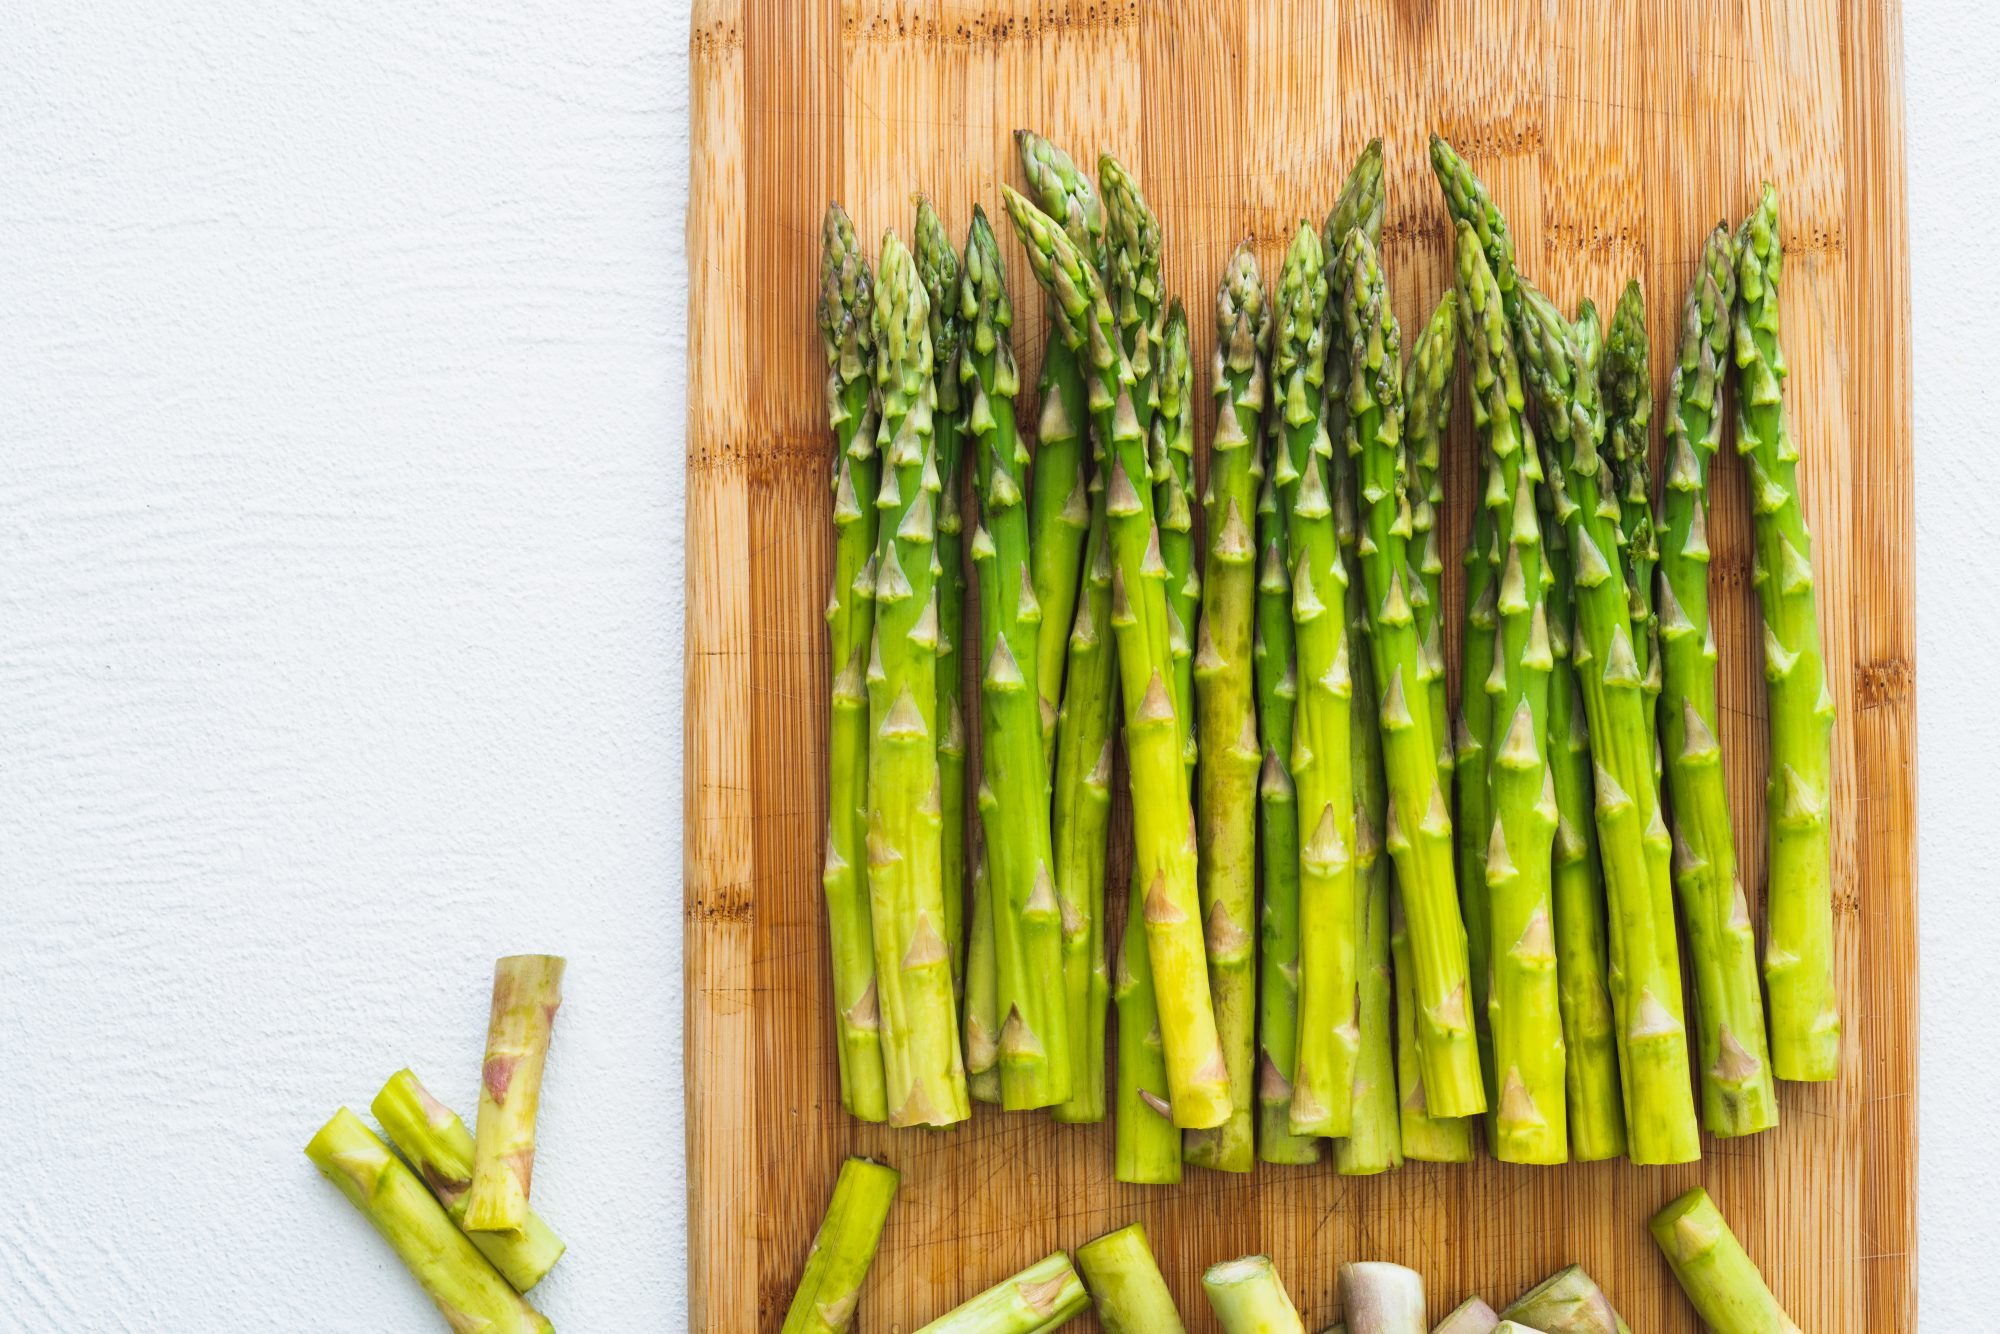 Asparagus Cutting Board Getty 4/22/20